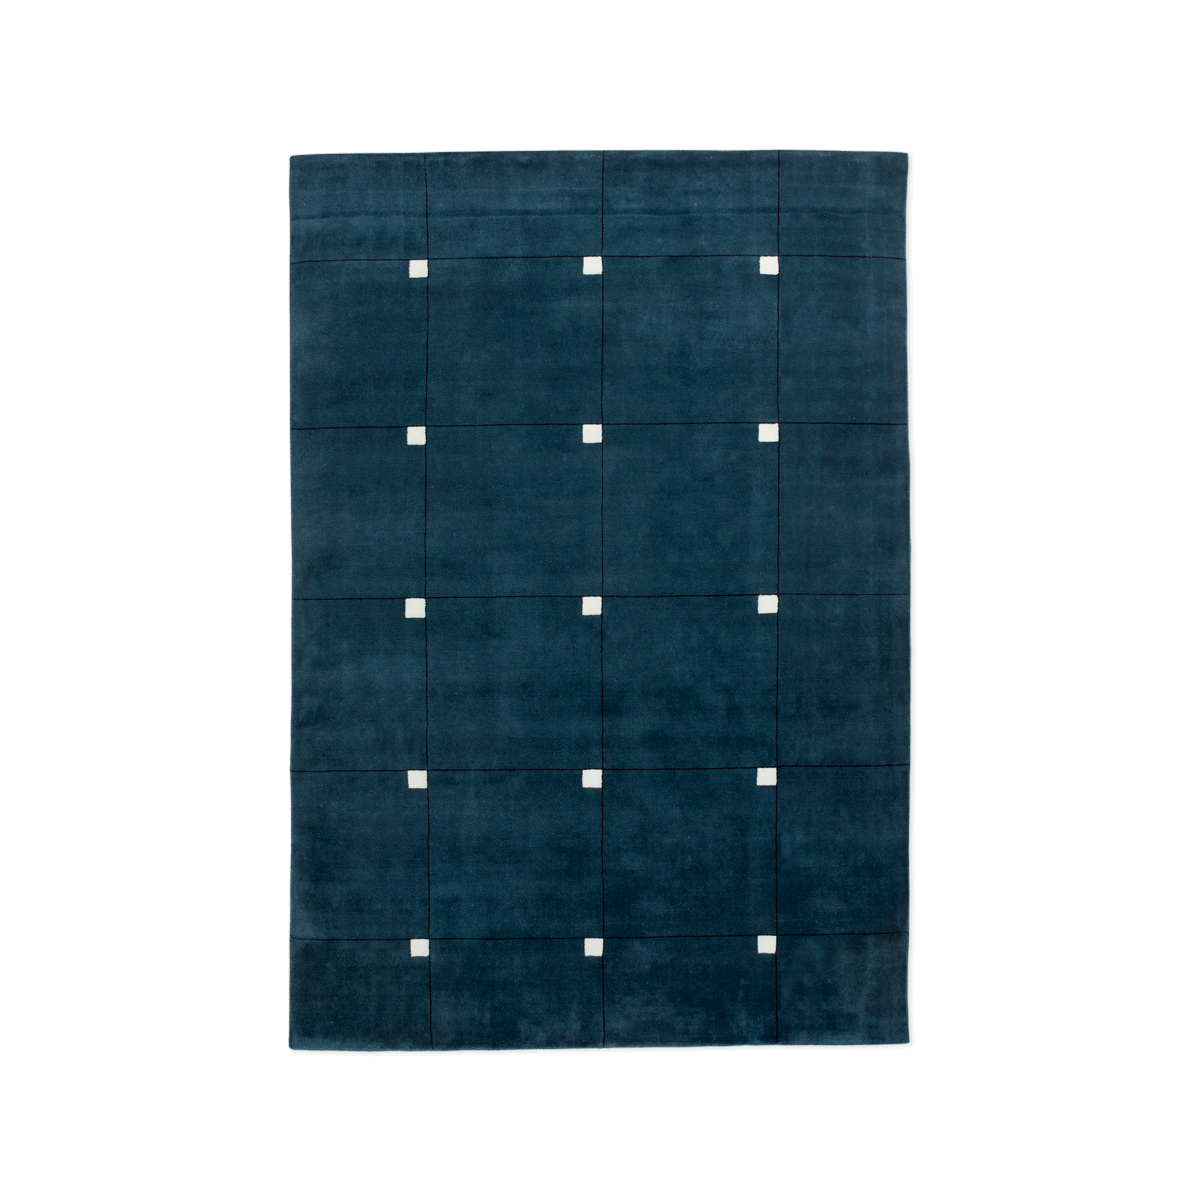 Product image of the plush rug Modern in the color Teal. The rug has a square pattern with small white squares in the upper right corners of the larger squares.